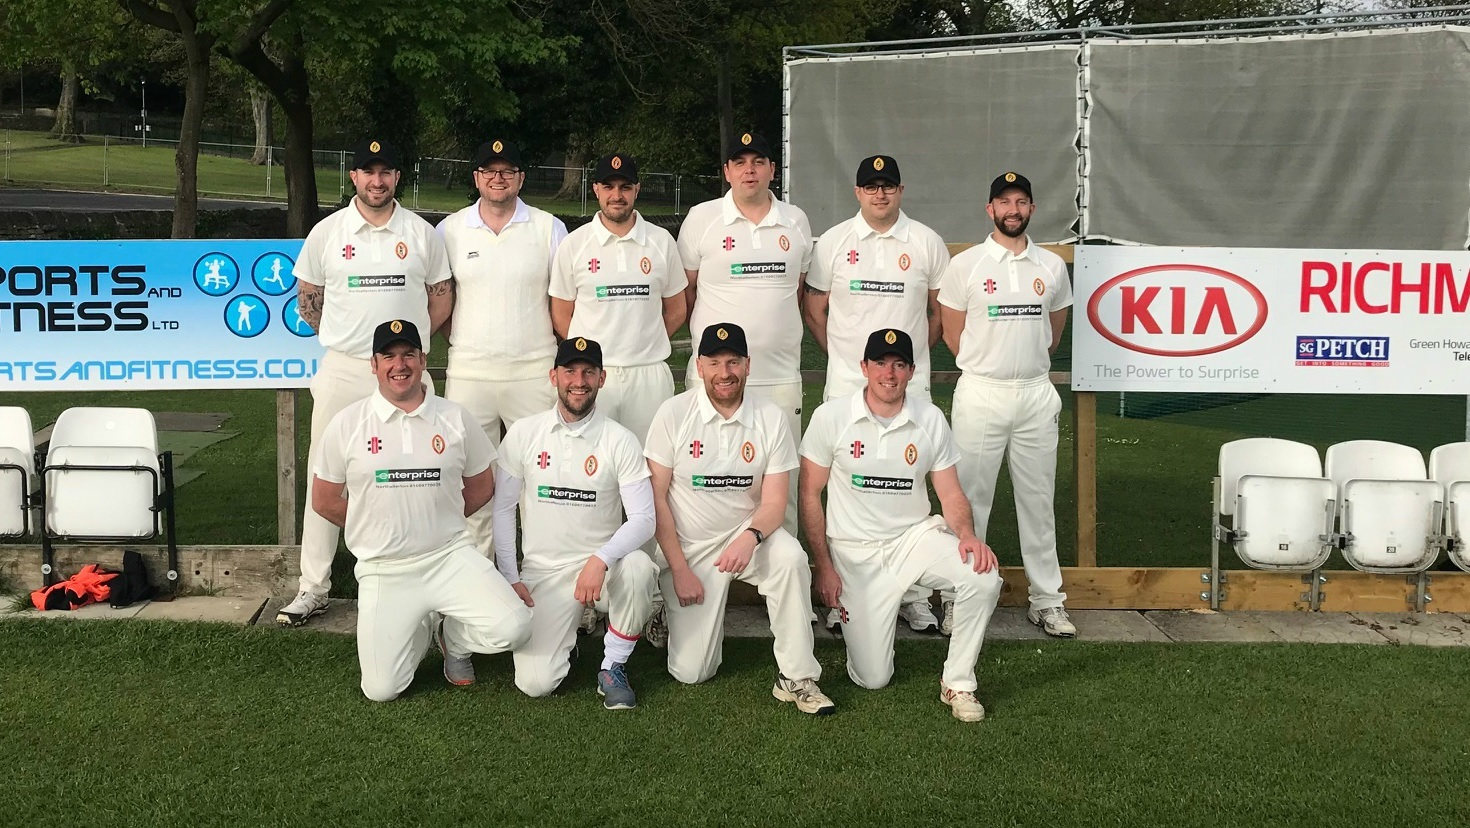 NEW DEAL: Richmond Mavericks Cricket Club. Back row, from left: Andrew Hines; Gary Nicholson; Fabio Sartini; Adam Amos; Kyle Emson; Tim Waite. Front row, from left: Mark Bastow, Adam Dunwoodie, Christian Player; Mike Layfield